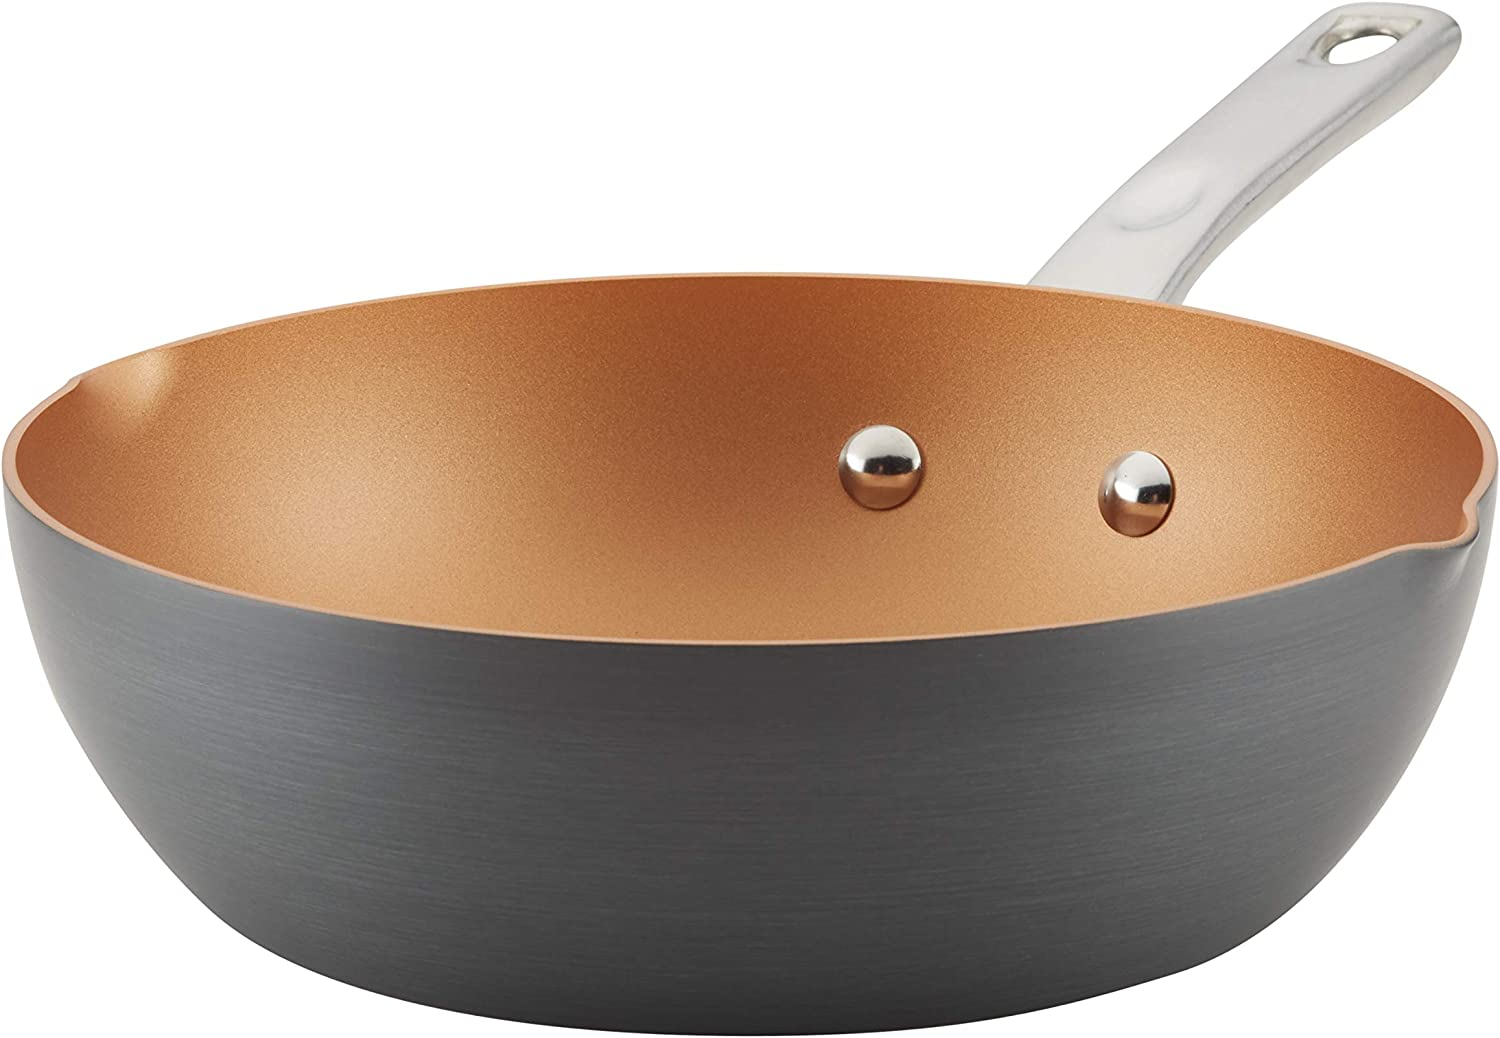 Ayesha Home All items free shipping Collection Hard-Anodized Pan Max 55% OFF Aluminum Nonstick Chef